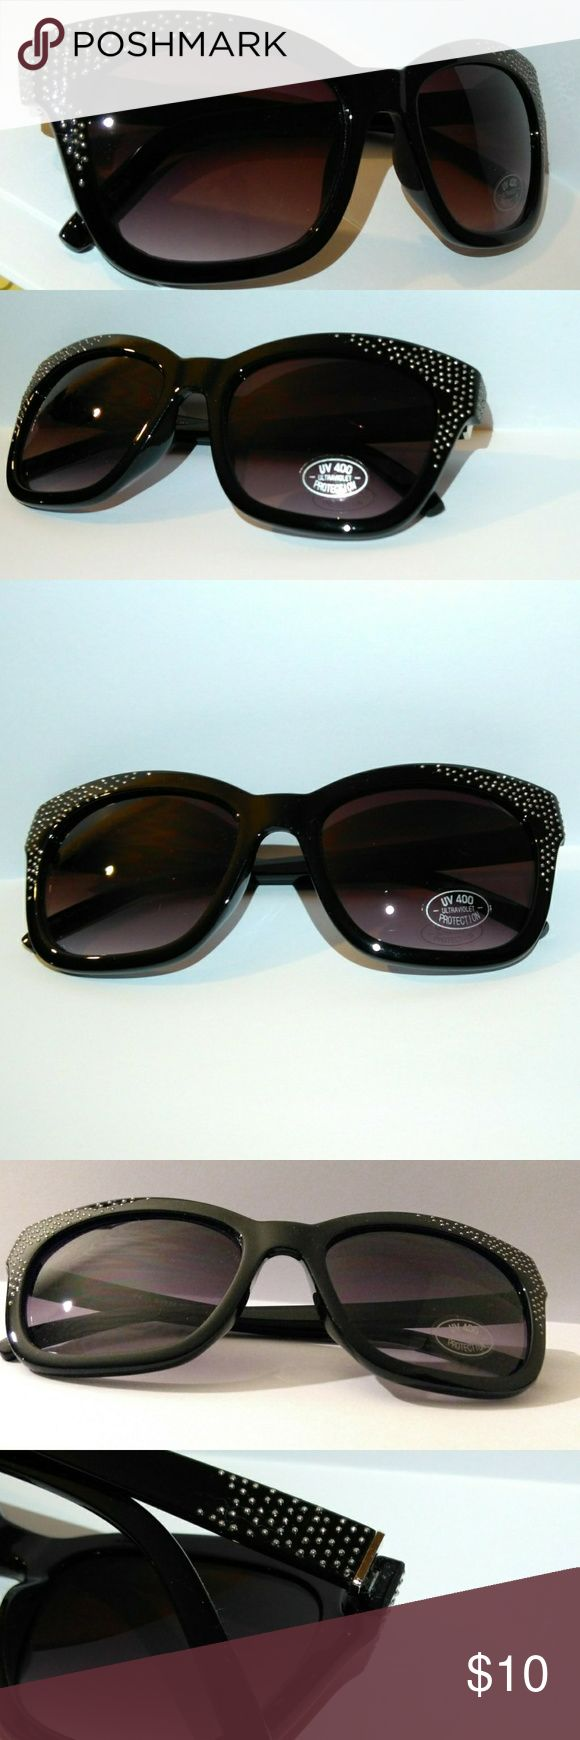 Sunnies Oversized Studded Women's Black Sunglasses Oversized Sunnies Black Horned rim Silver studded accents UV 400 Ultraviolet Protection Brand new High Quality What u C is what u get Free Gifts+10% off Bundles  ♡Engaged After 3yrs Long Distance Raising $ 4 Visa+airfare+Wedding Plz Follow/Share Thanks♡ ♡I'm grateful 4 your business♡If there's any problem, plz Let me know♡ ✓Worry Free Shop ✓Free Returns - Refund or Exchange unbranded Accessories Sunglasses